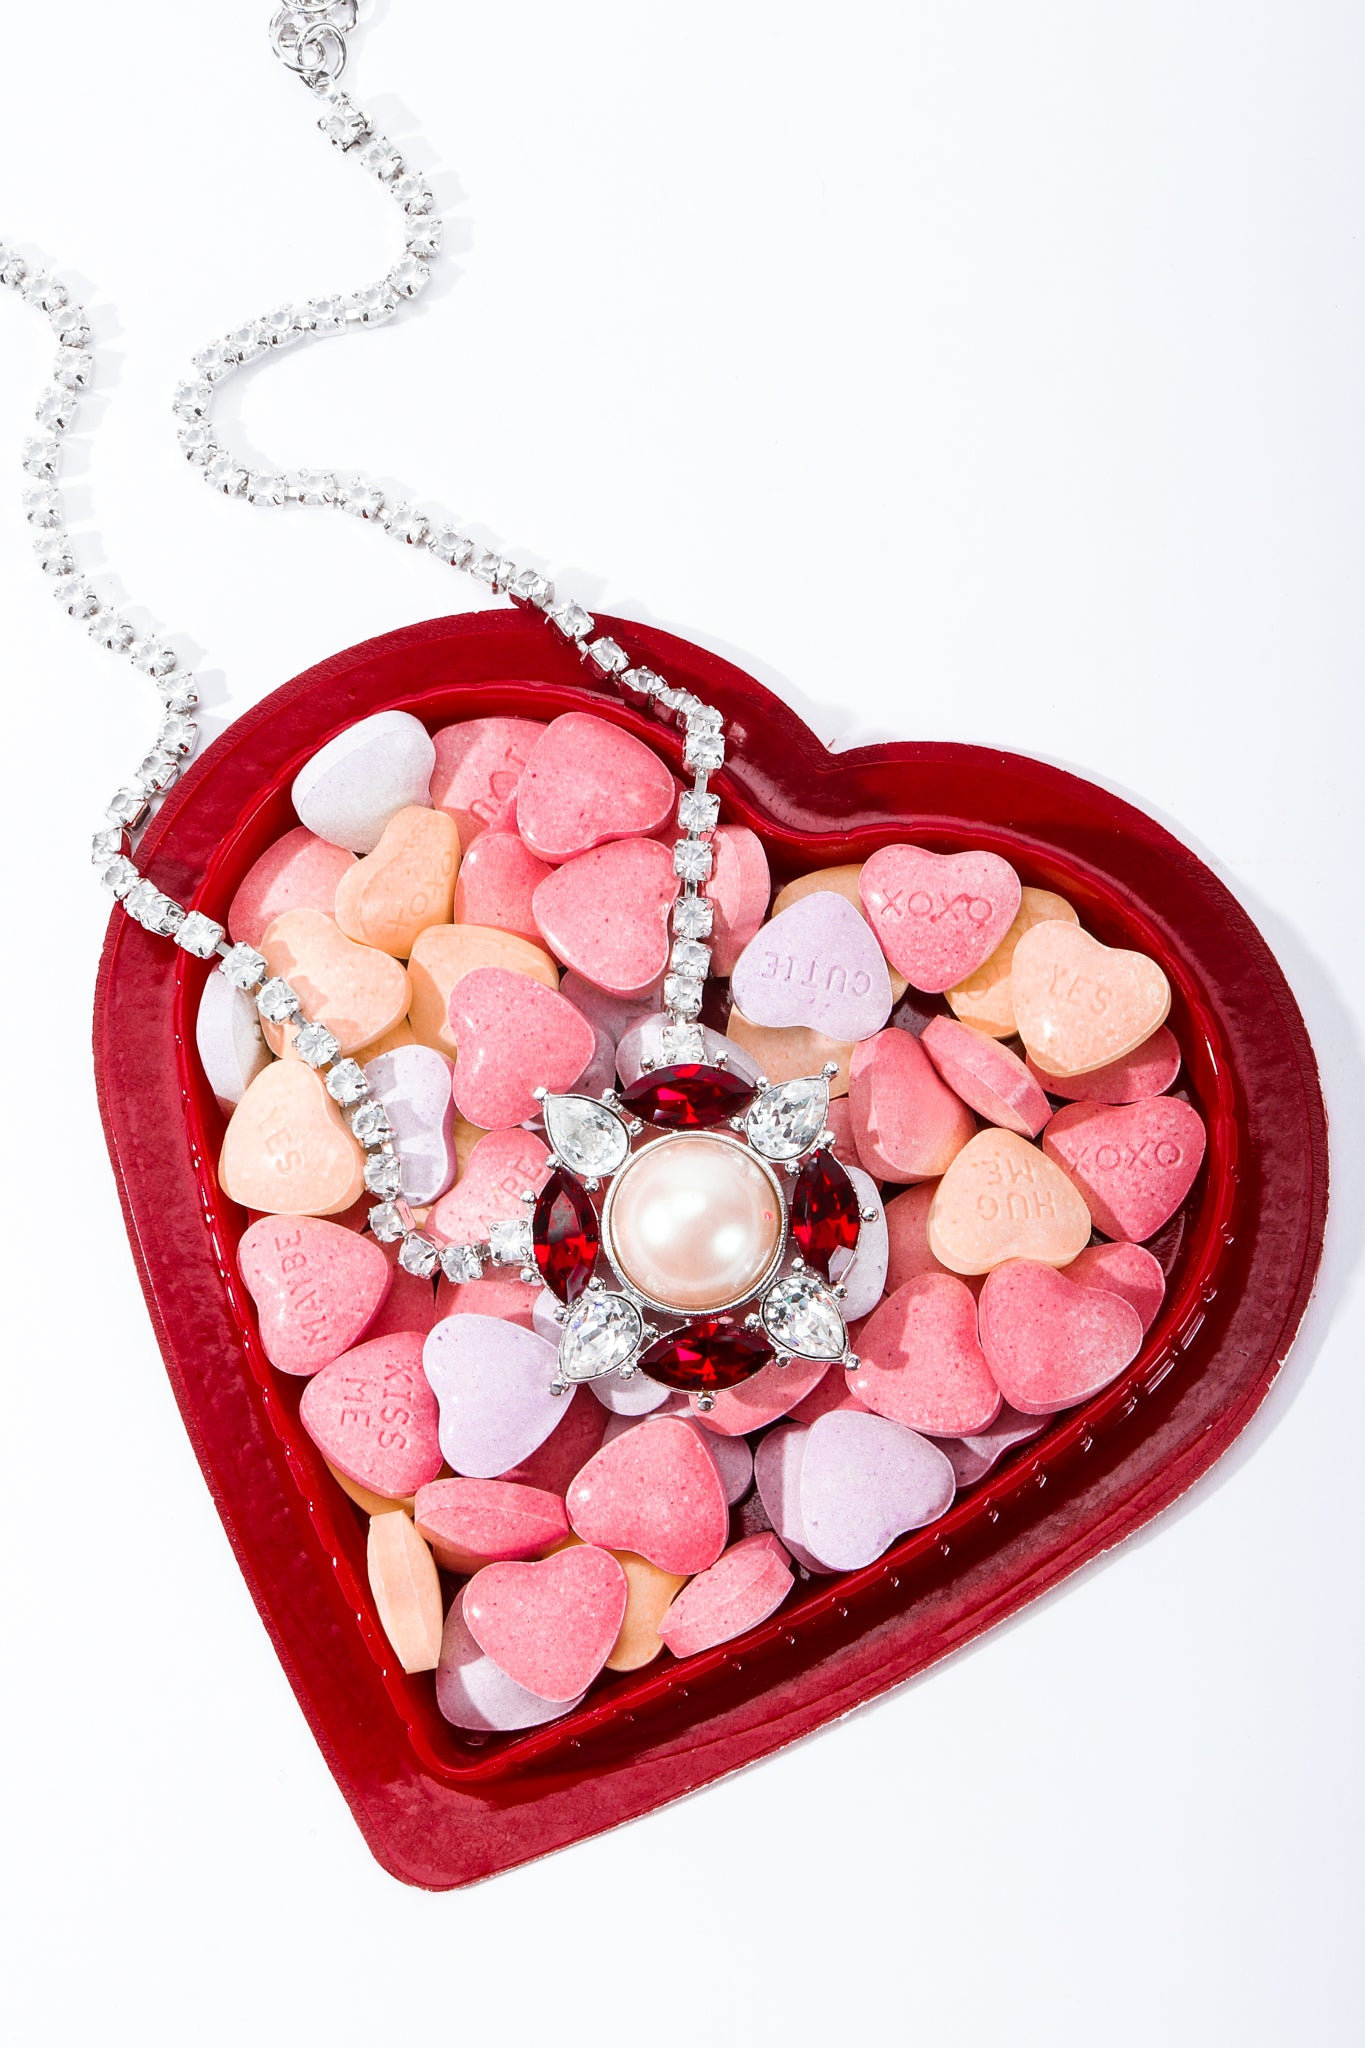 YSL faux ruby lifesaver necklace on heart shaped box of candy hearts